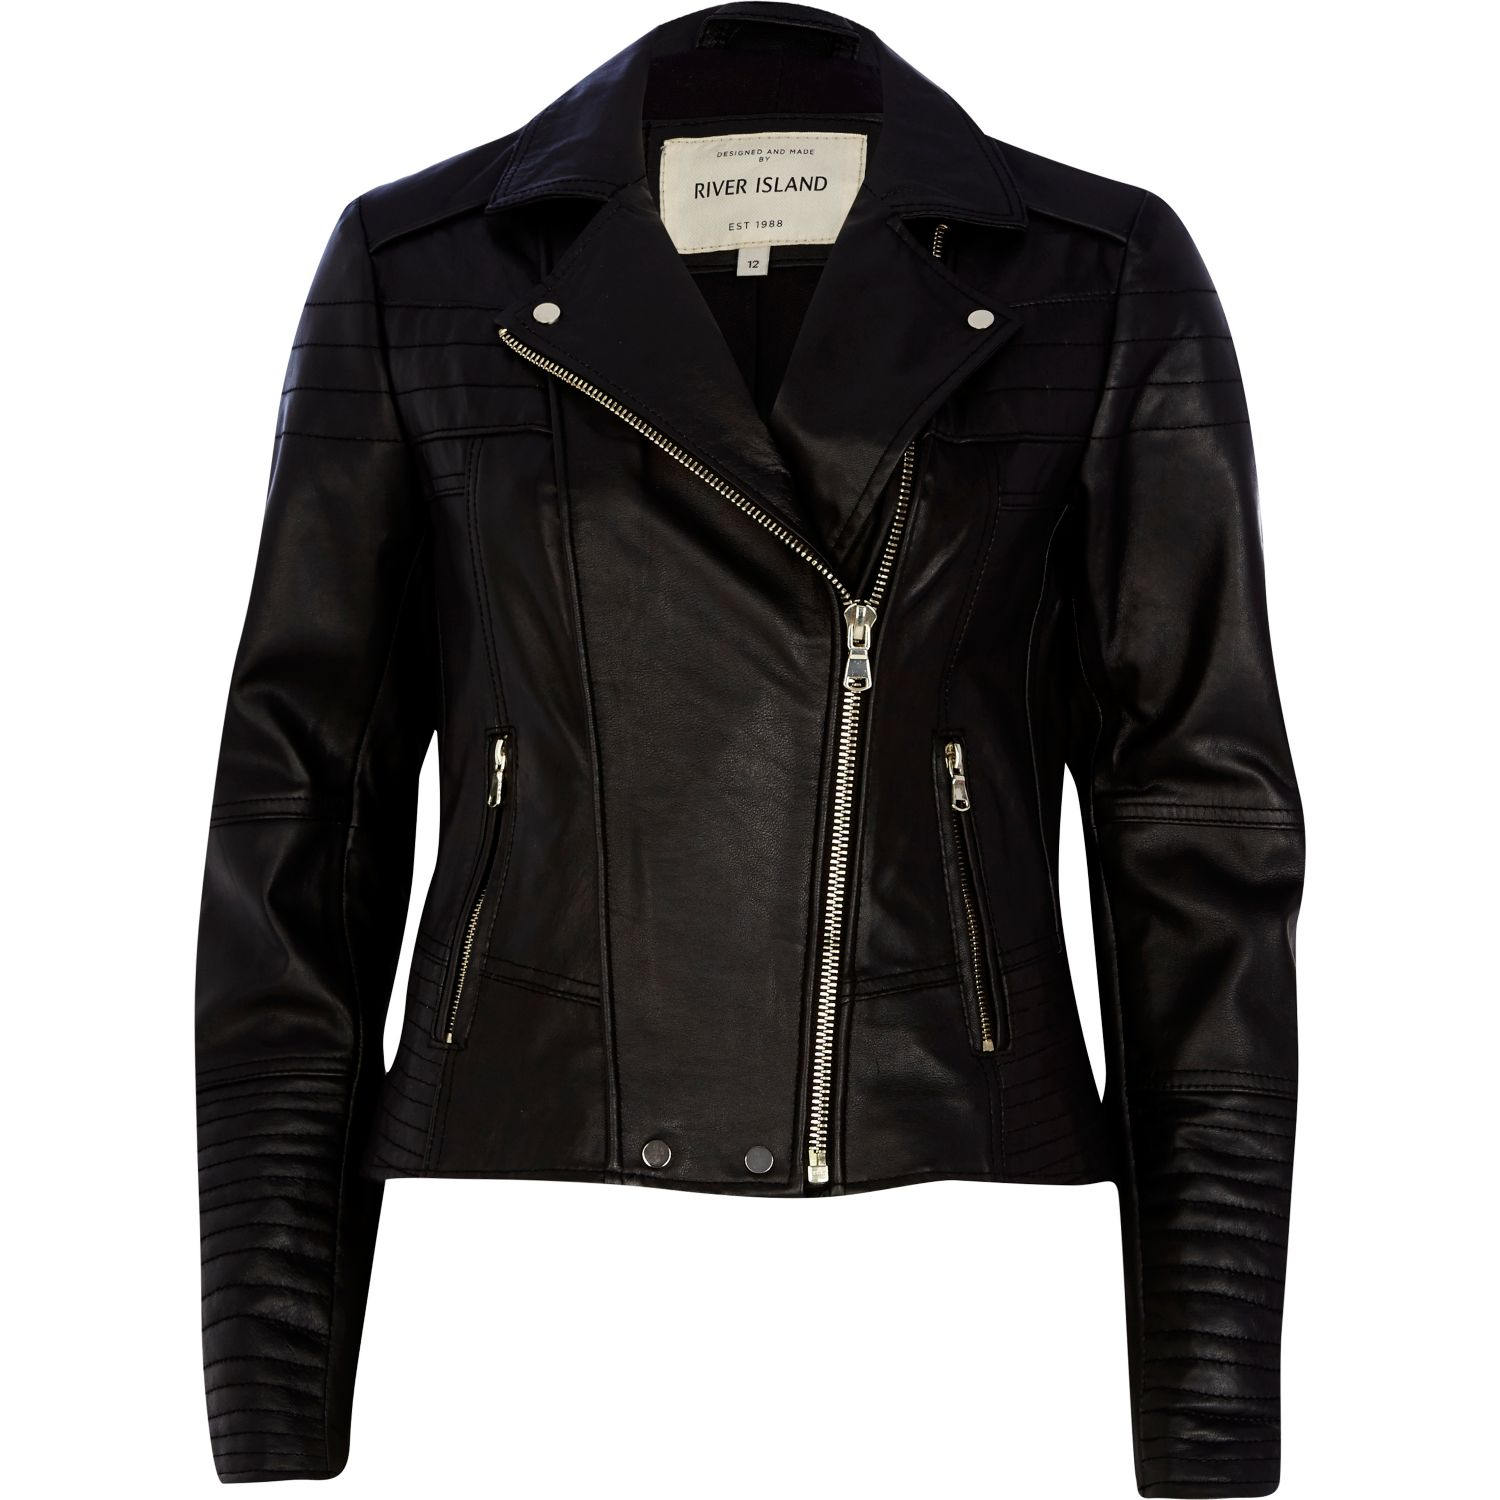 Decrum Gal Gadot Women Leather Jacket - Black Quilted Leather Motorcycle Jacket. by Decrum. $ $ FREE Shipping on eligible orders. 5 out of 5 stars 1. Product Features quilted design motorcycle jacket look. Our black leather jacket GUESS Factory Women's Giardini Quilted Faux-Leather Jacket.